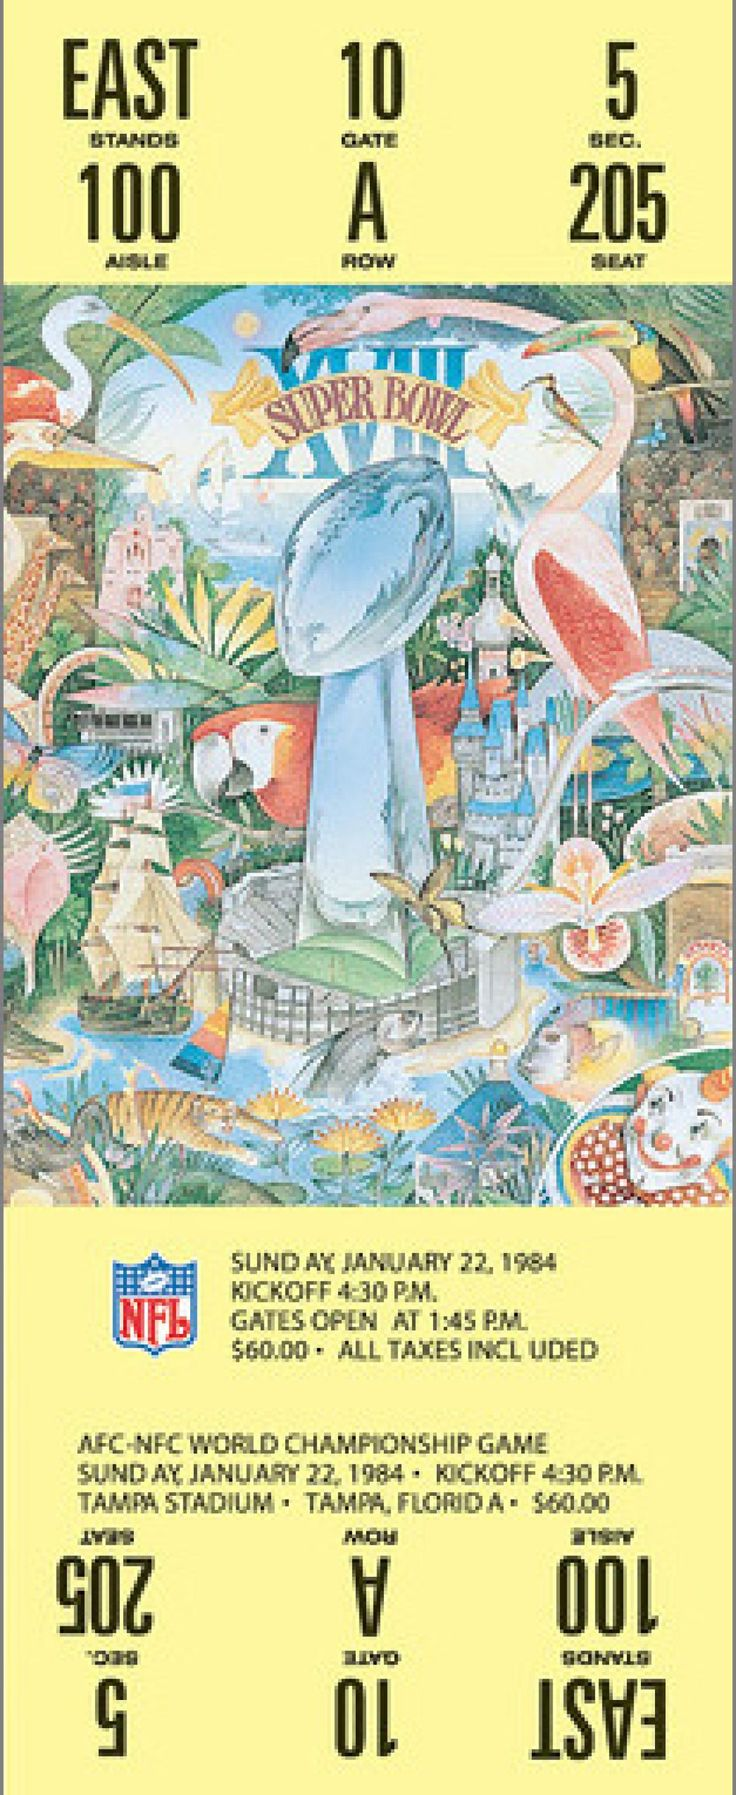 Super Bowl XVIII - Los Angeles Raiders vs. Washington Redskins - Played on January 22,1984, at Tampa Stadium in Tampa, Florida. The average ticket cost for the game was $60.00. The MVP was Raiders RB Marcus Allen. Favorite: Redskins by 3. Referee: Gene Barth. Attendance: 72,920. 30-second commercial: $368,200. Halftime show: University of Florida and Florida State marching bands. Viewers - 77.6 million.